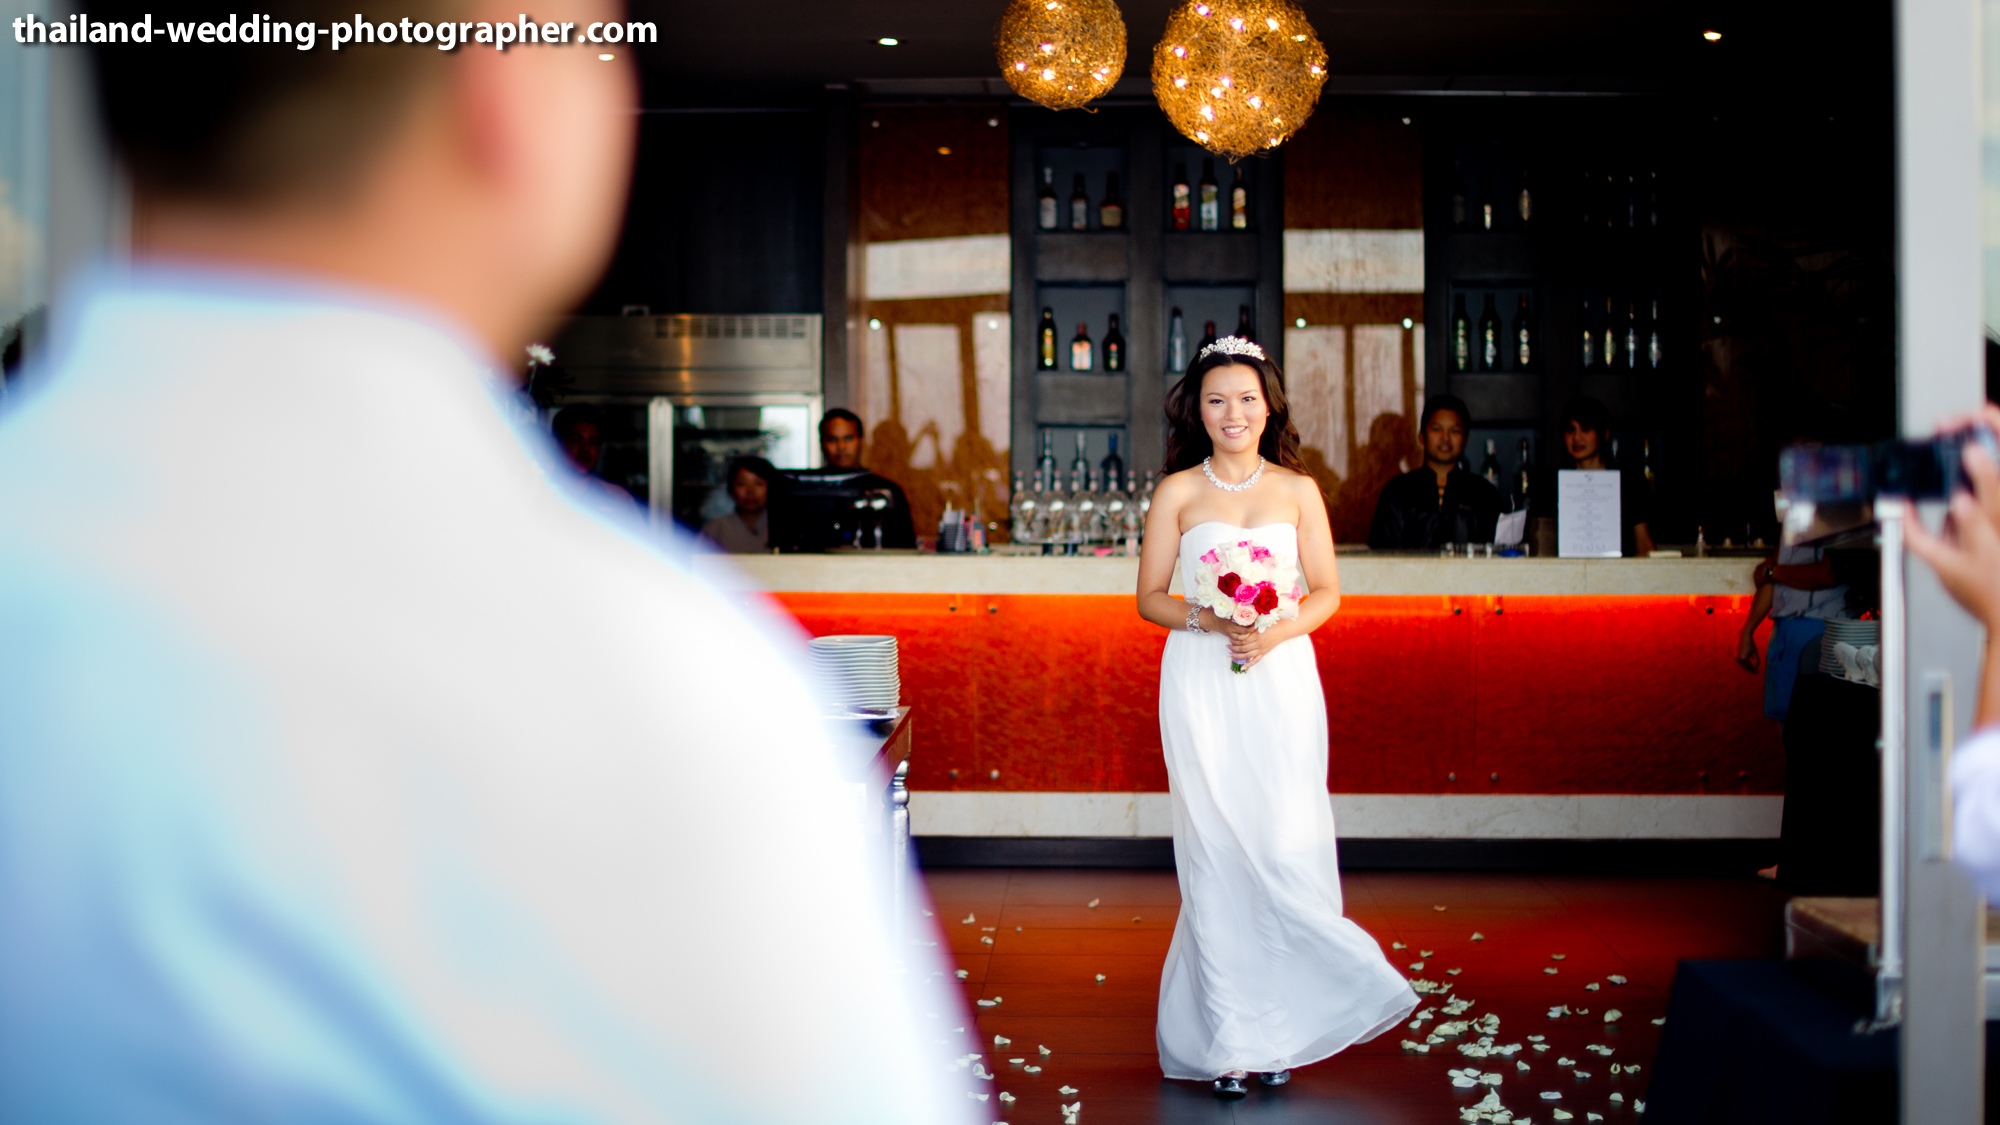 Photo of the Day: Wedding @ Cape Sienna Hotel & Villas